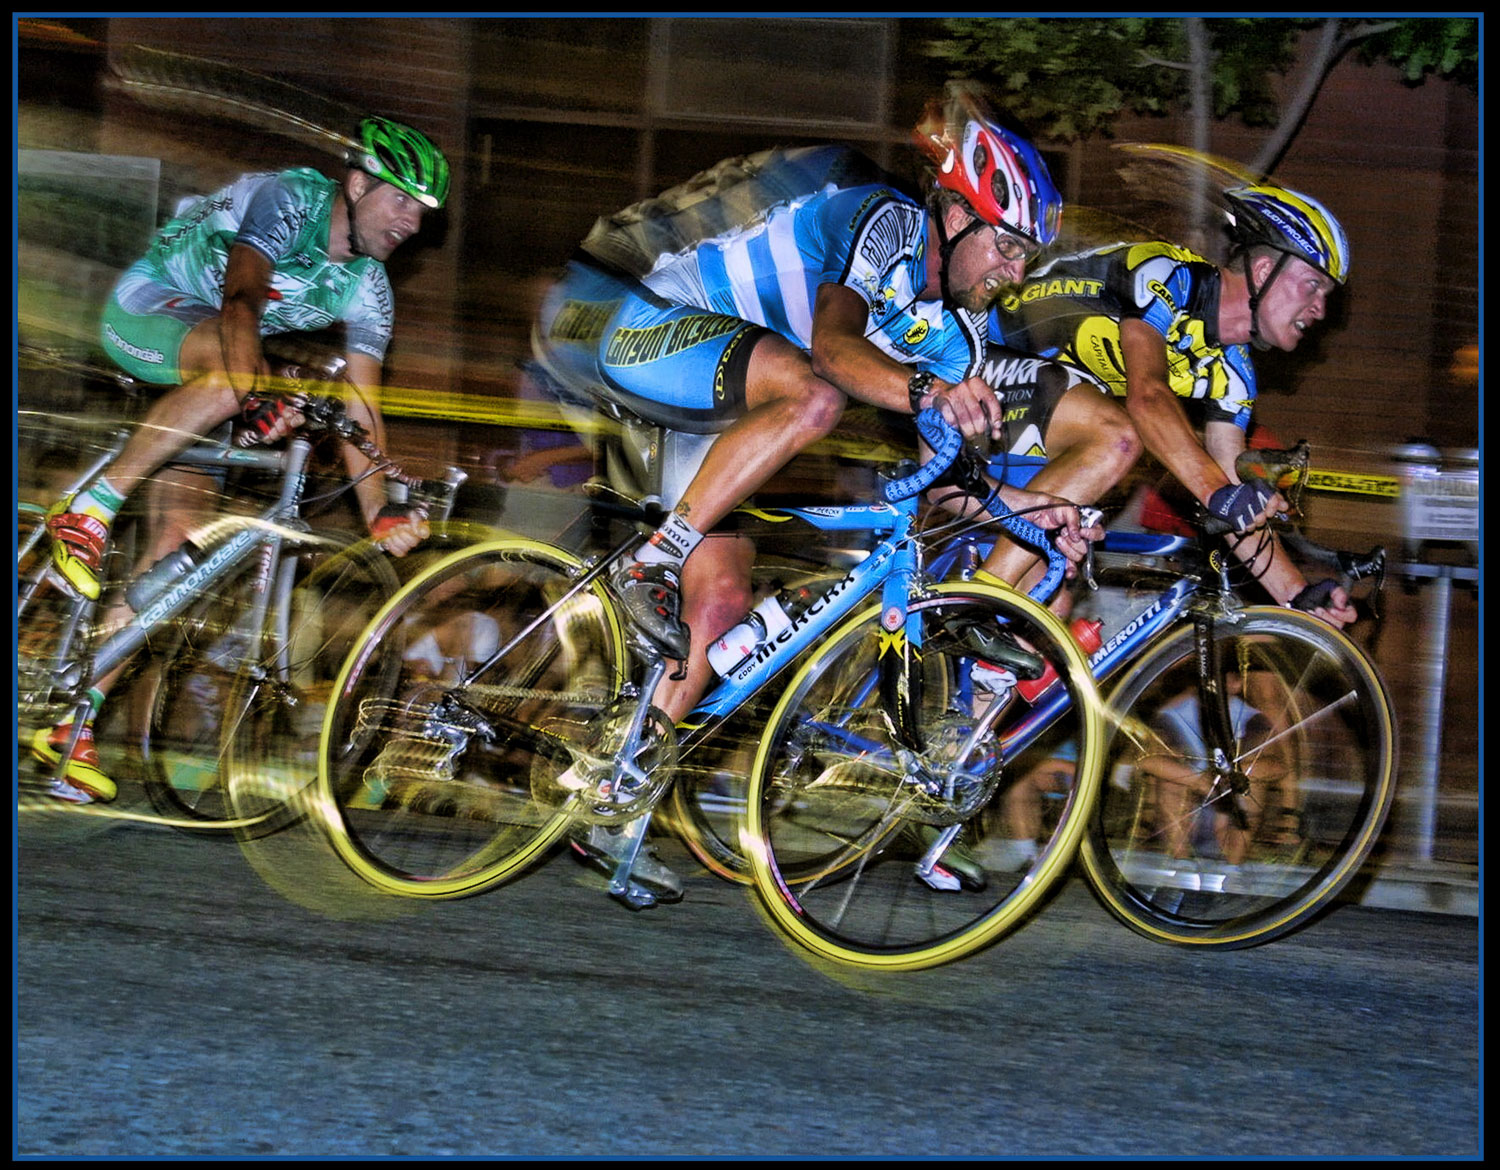 the rule of odds in photography -three bikers in a race